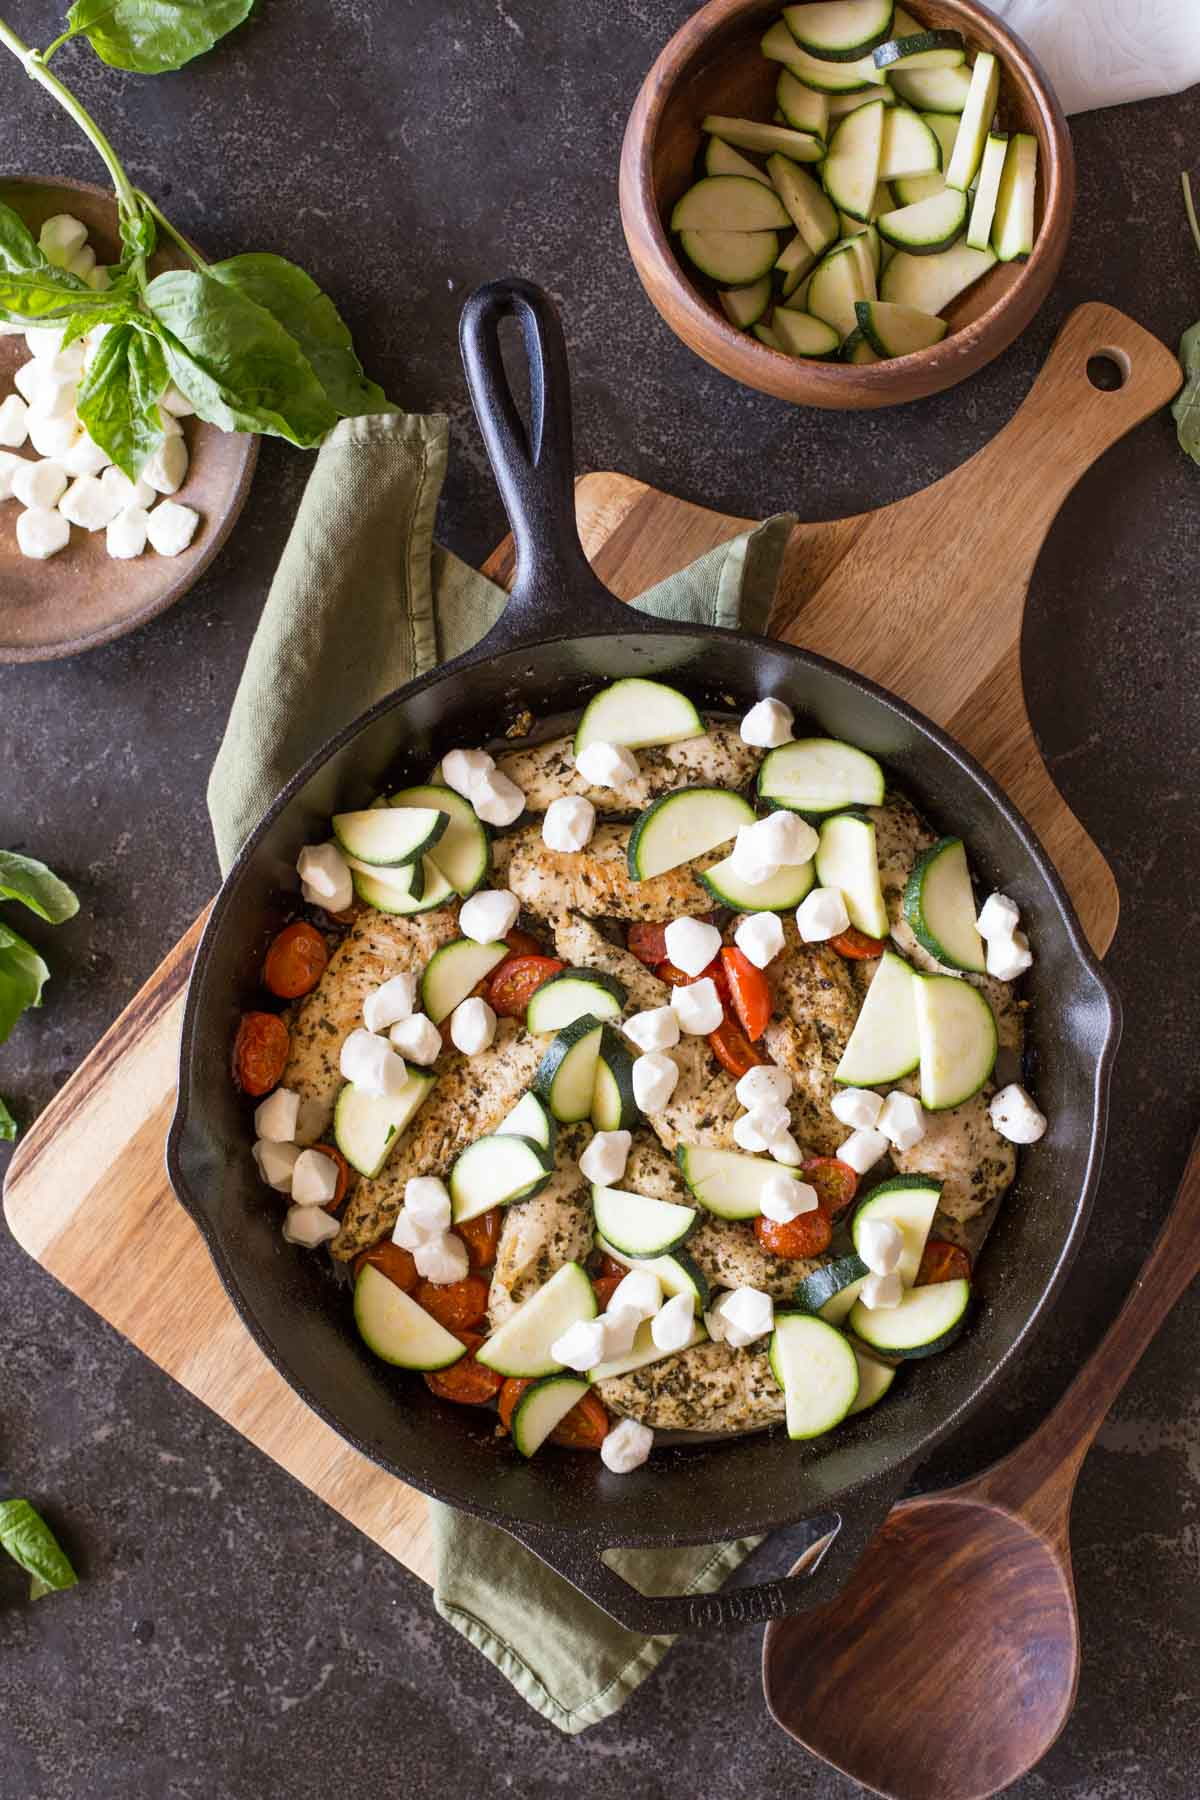 Cooked chicken and caramelized cherry tomatoes in a cast iron skillet, topped with zucchini slices and fresh mozzarella pearls, with some fresh basil, a bowl of sliced zucchini, a bowl of fresh mozzarella pearls and a wooden spoon next to the skillet.